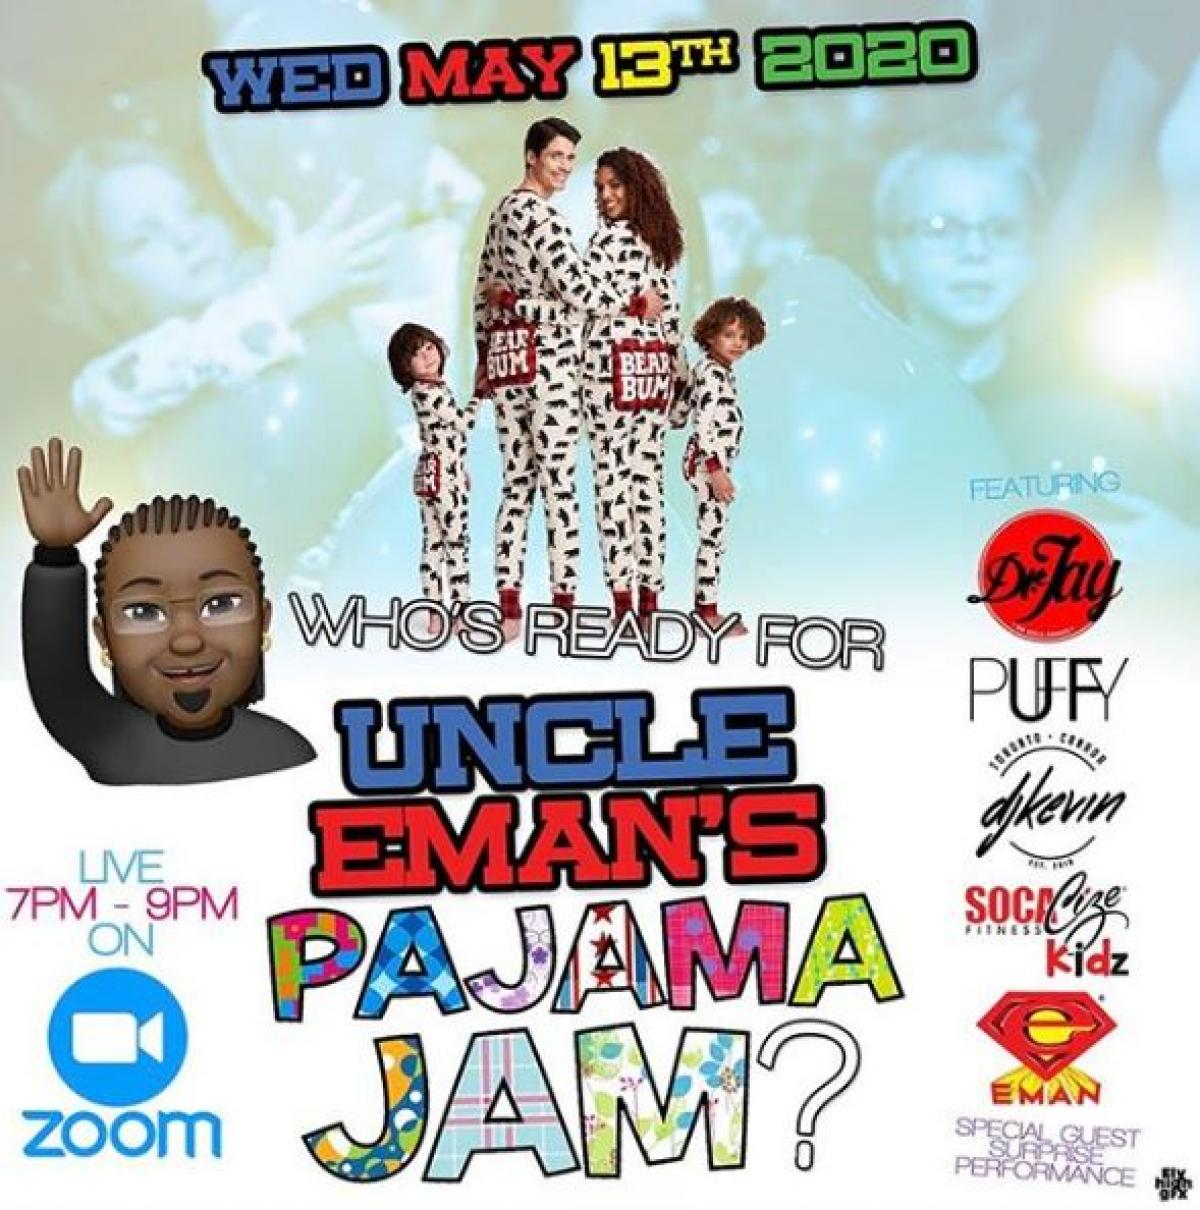 Uncle Eman's flyer or graphic.